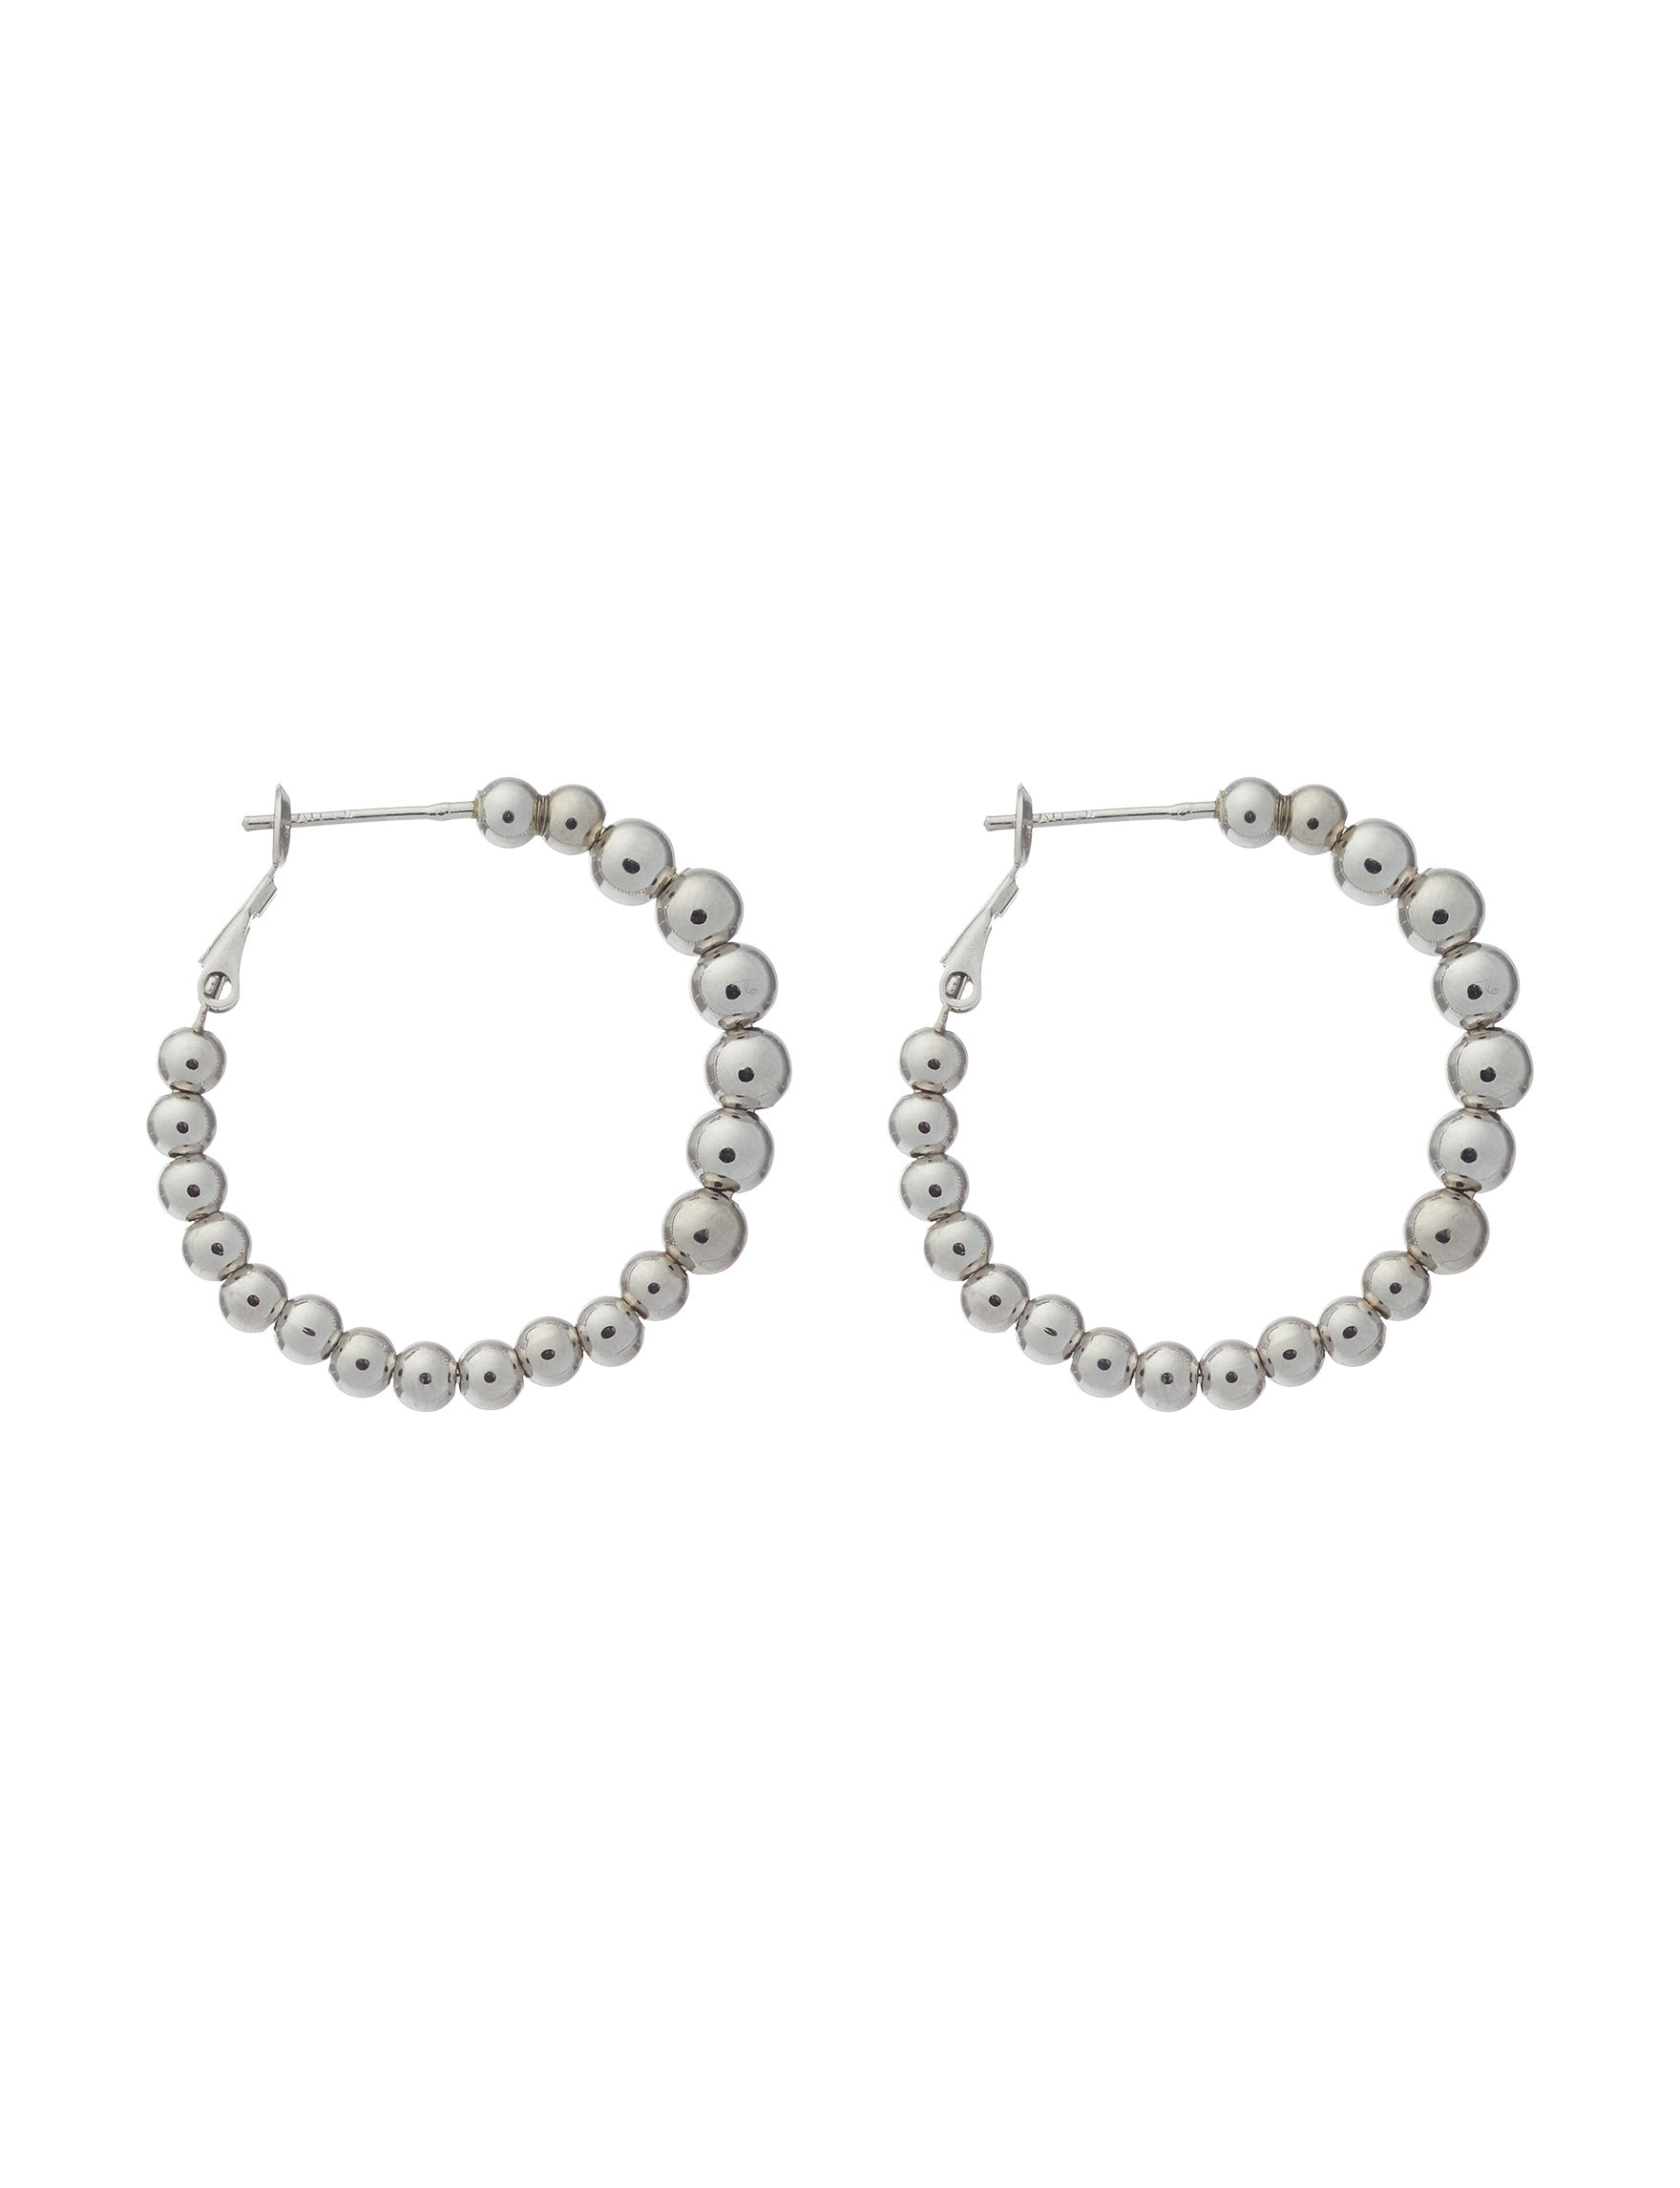 Athra Fine Silver Plated Hoops Fine Jewelry